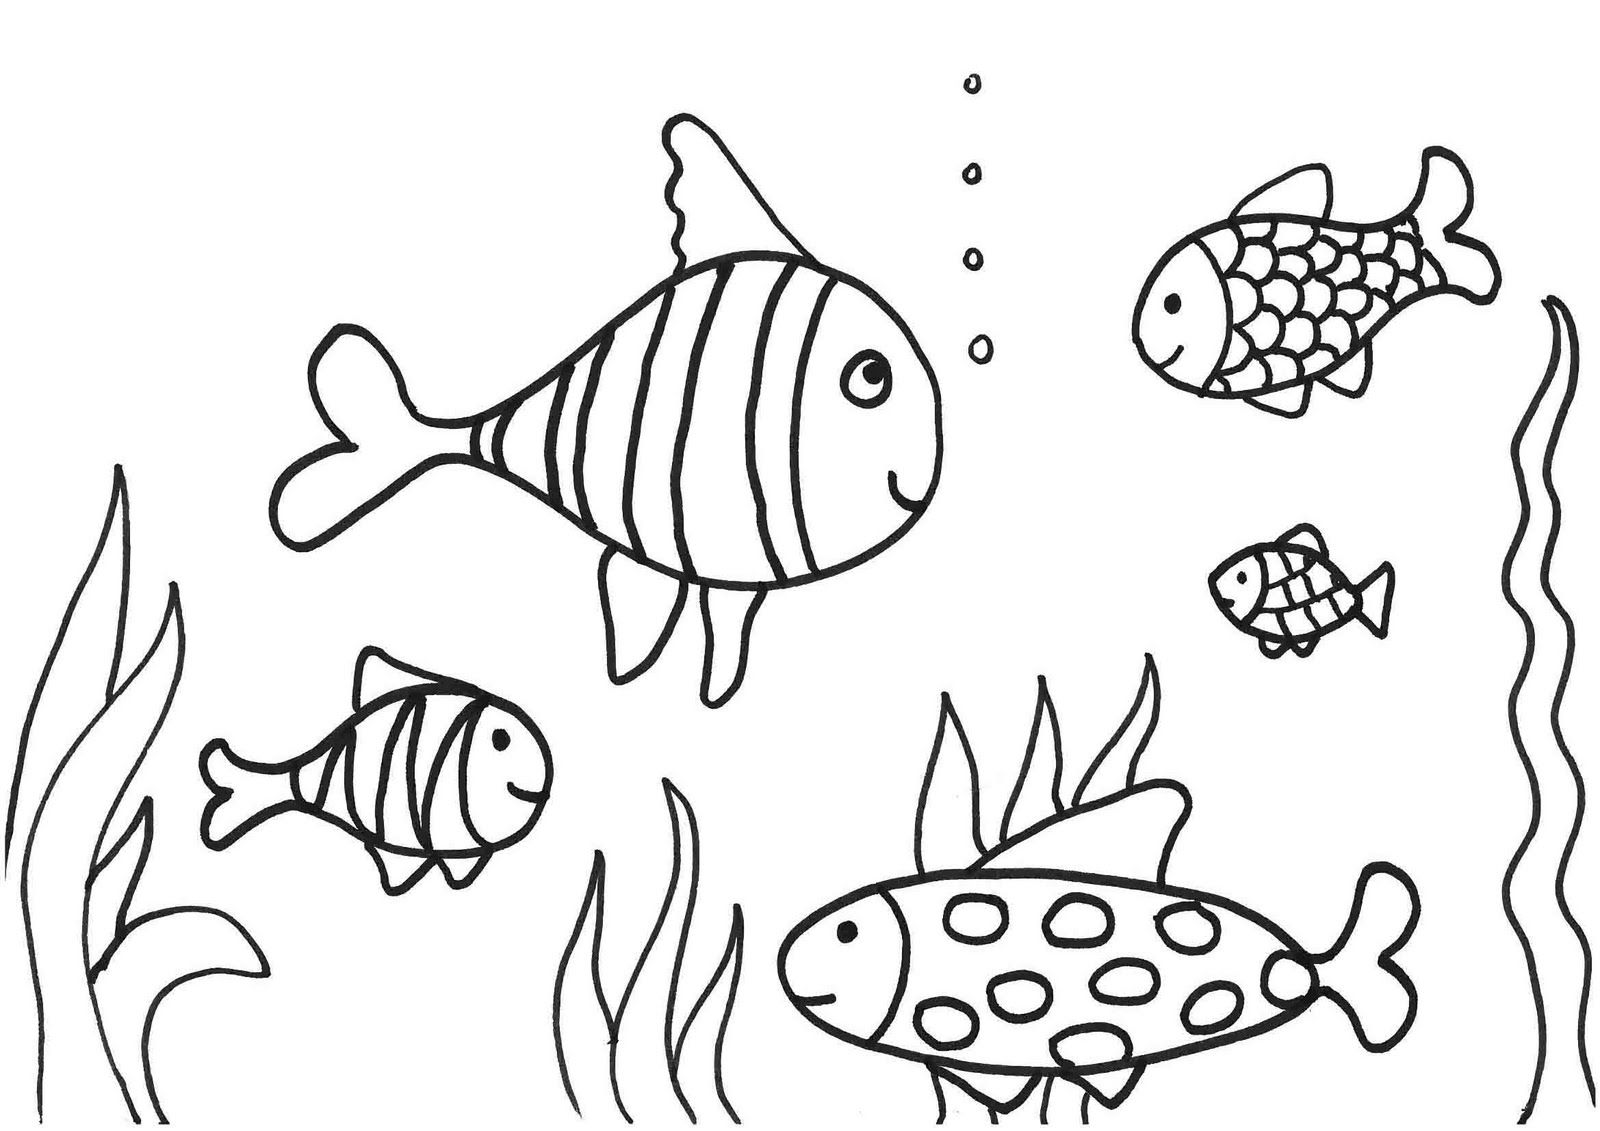 free-the-rainbow-fish-coloring-pages-imagixs | Stained glass | Pinterest